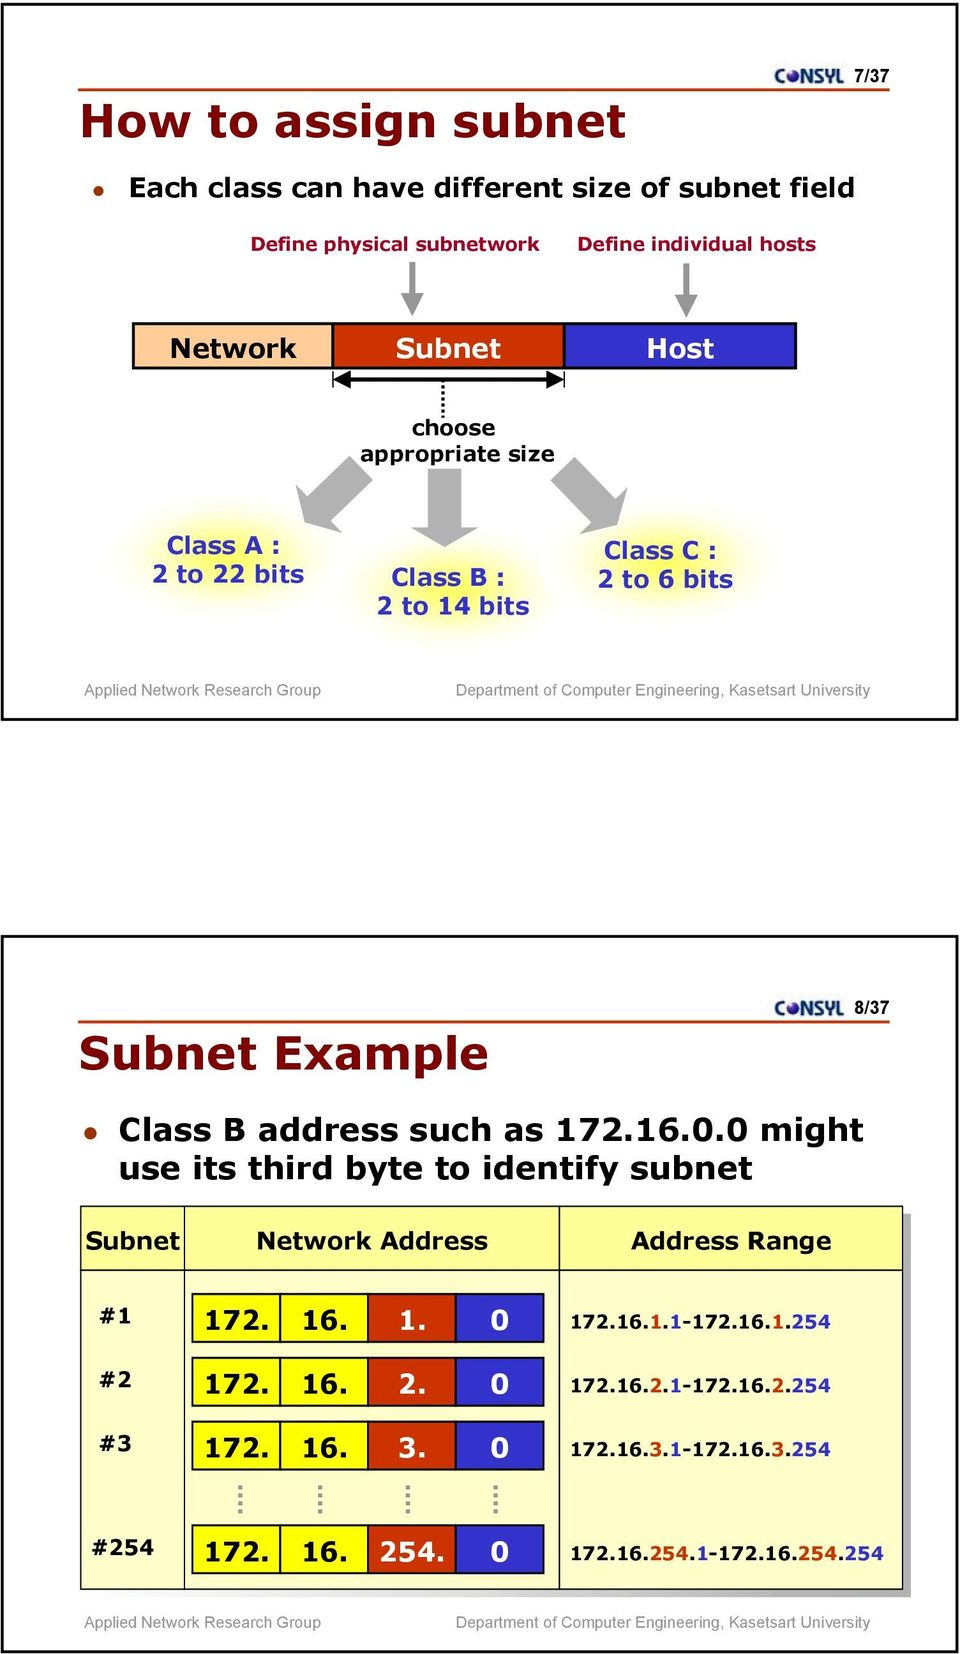 address such as 172.16.0.0 might use its third byte to identify subnet Subnet Network Address Address Range #1 172.16.1.1-172.16.1.254 172.